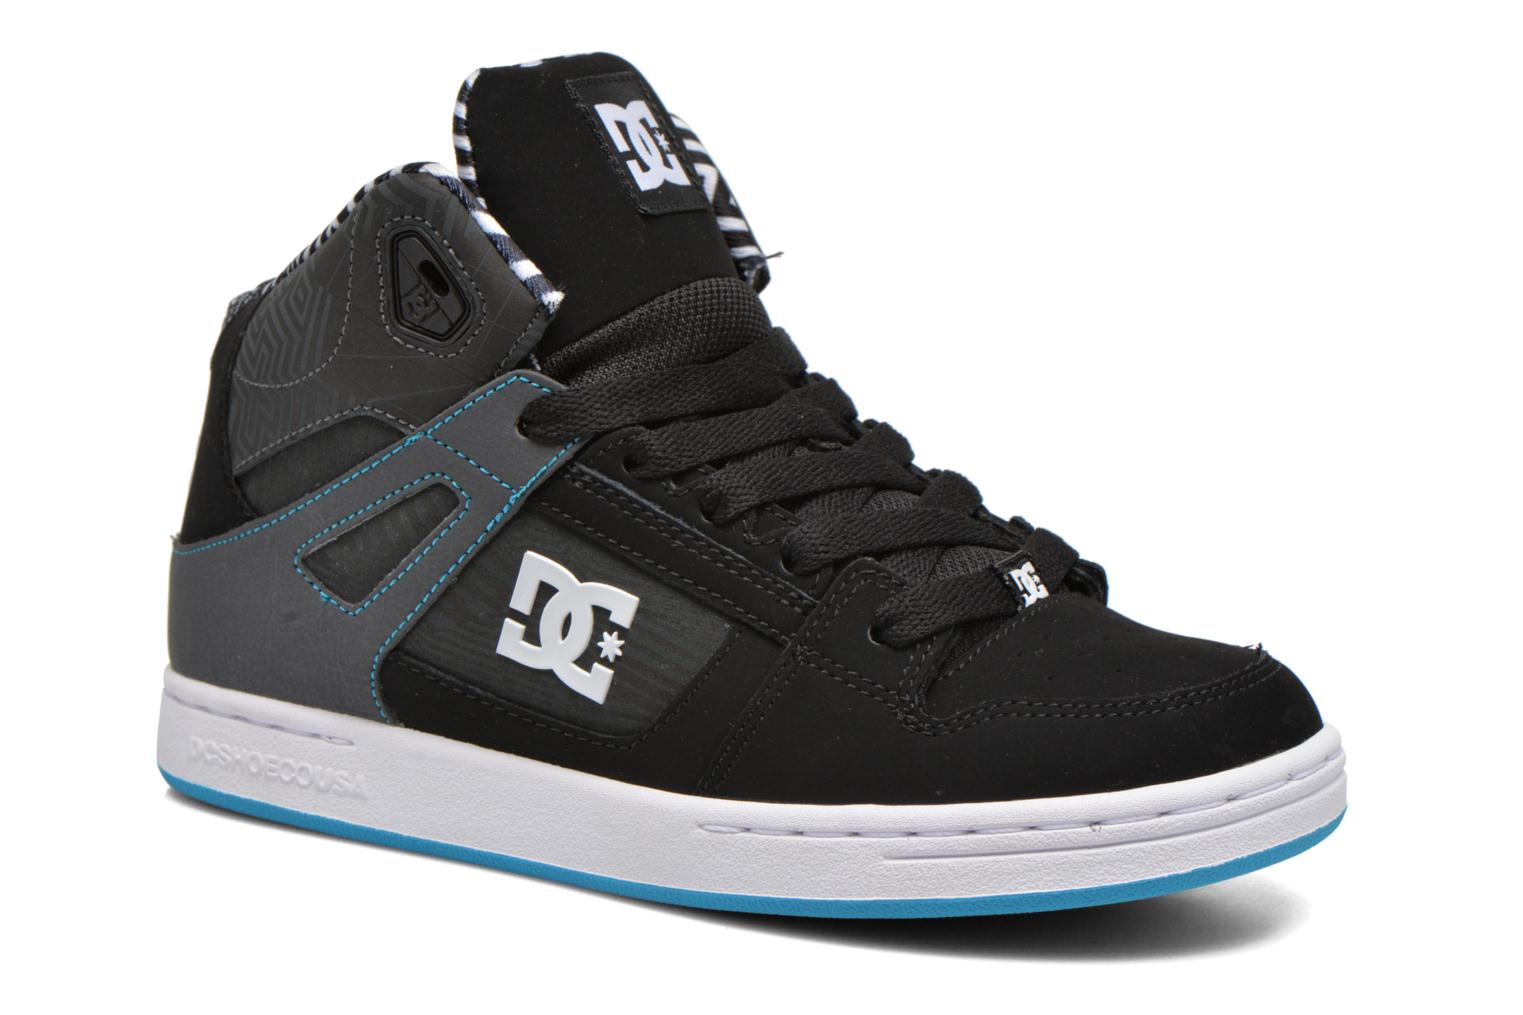 Rebound k Black/white/blue